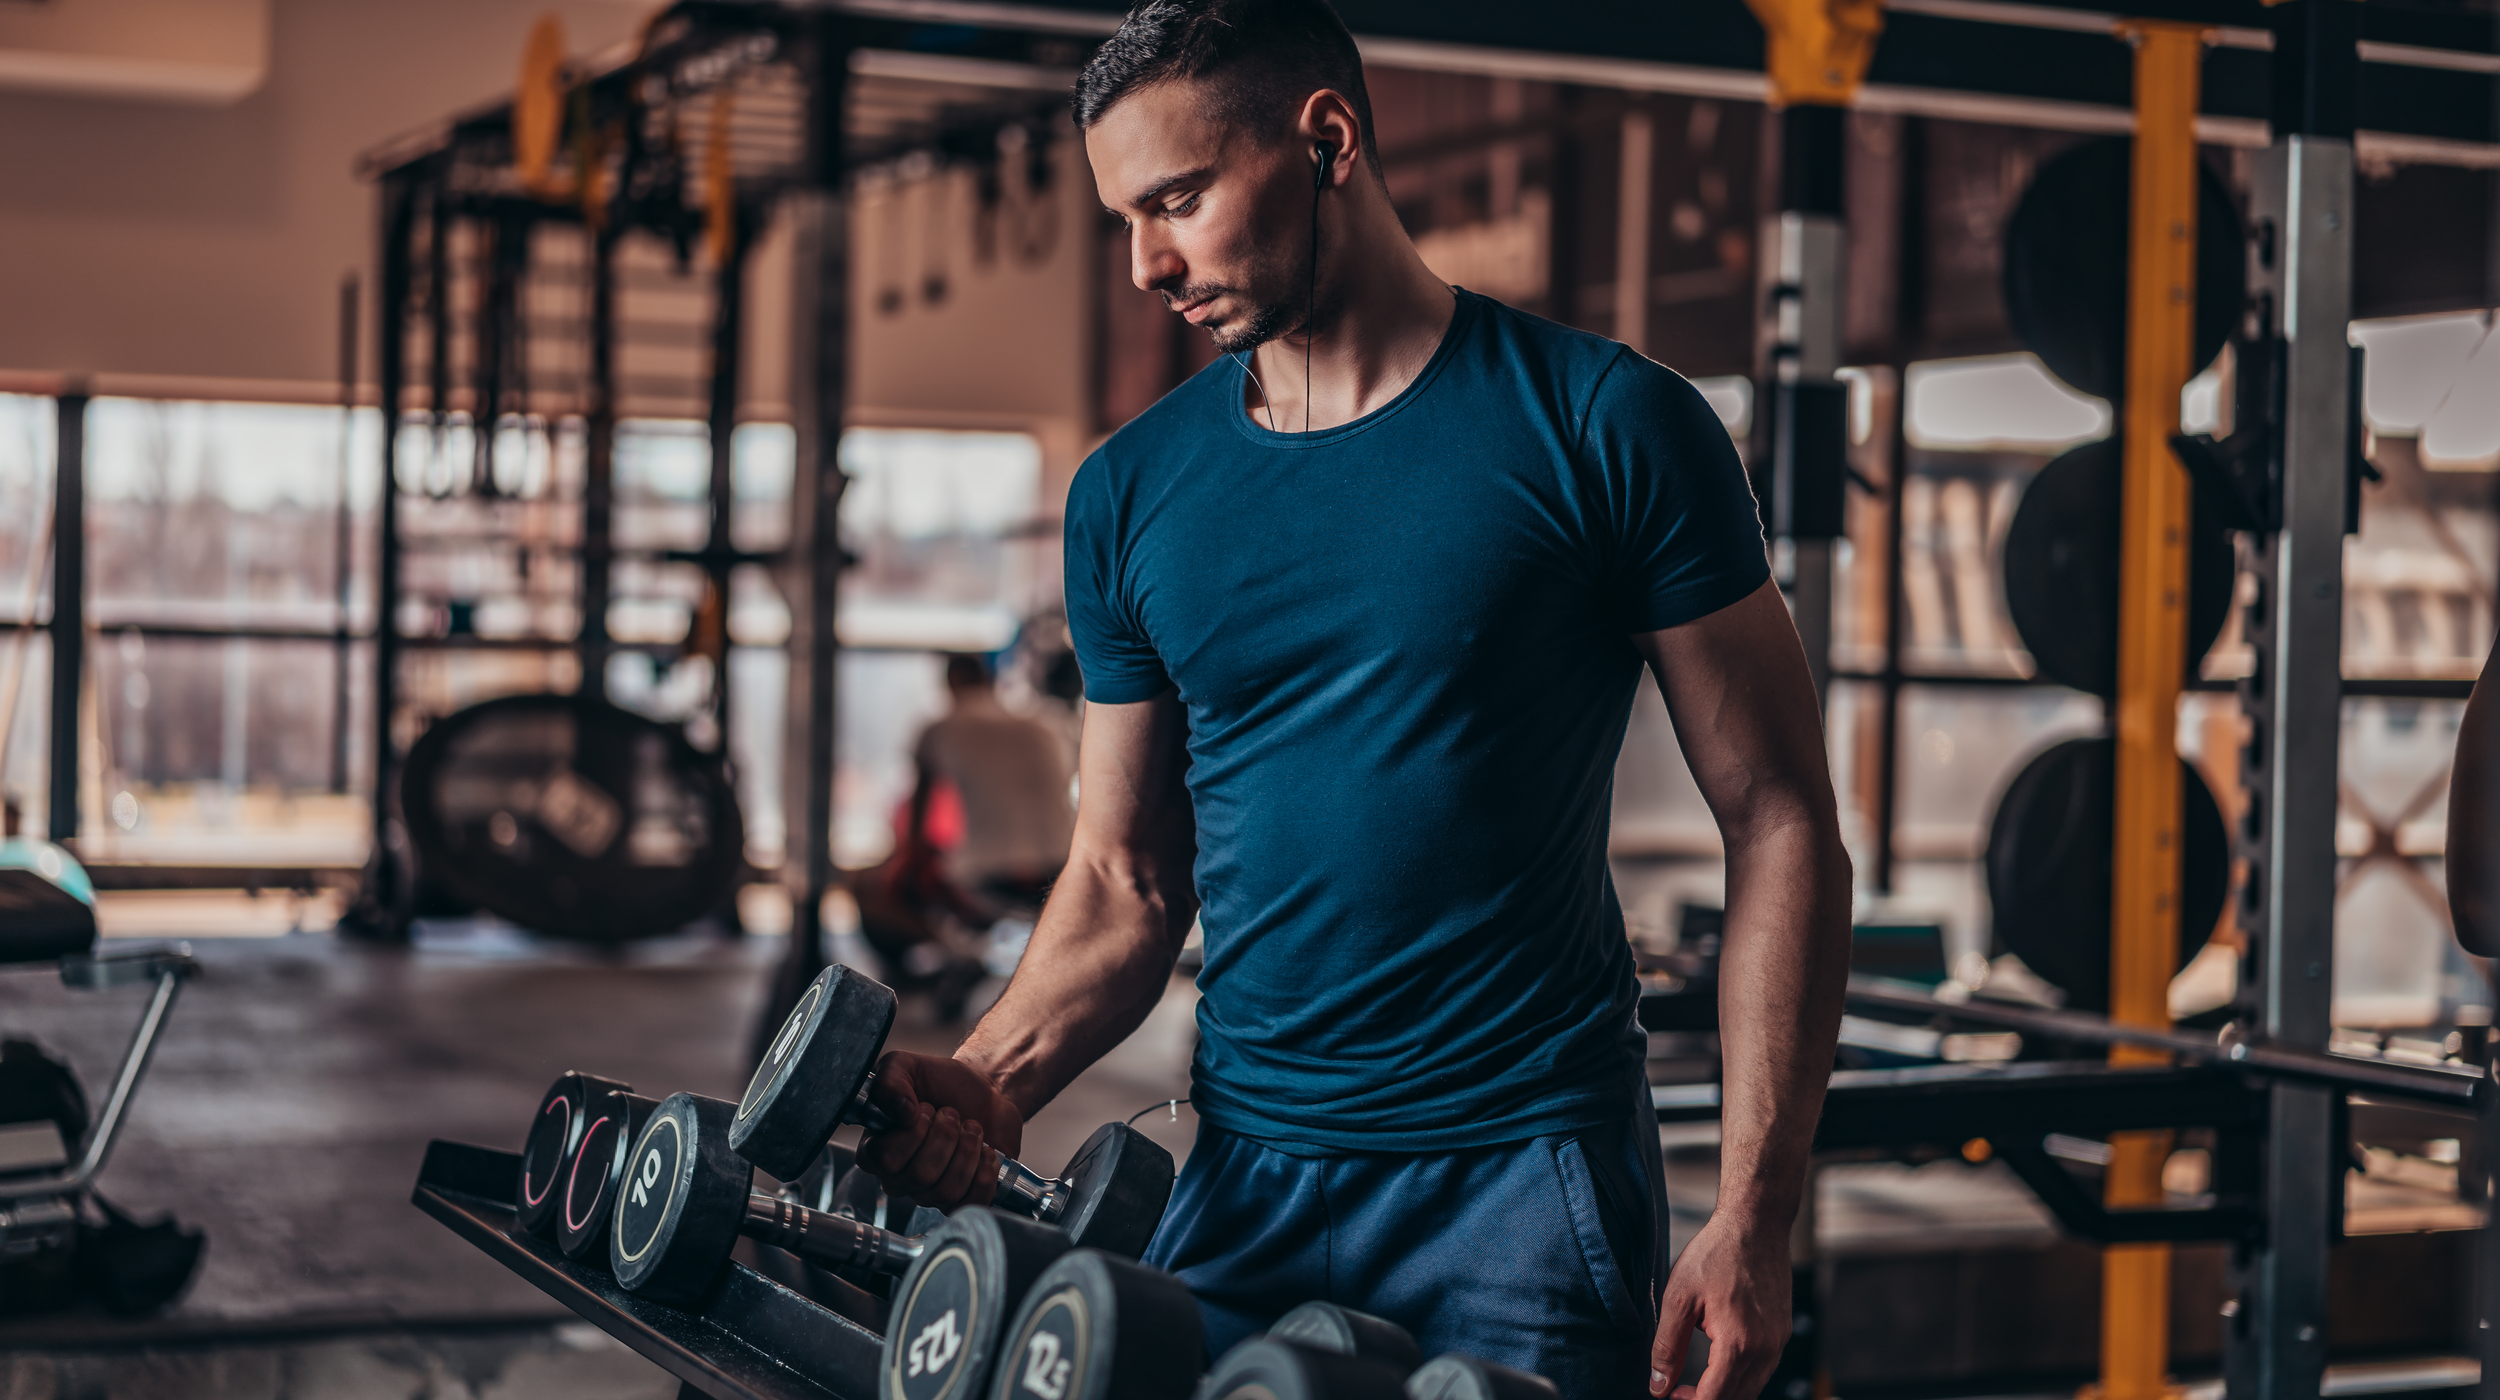 Why Ectomorphs Need a Good Workout Routine to Pack on Muscle